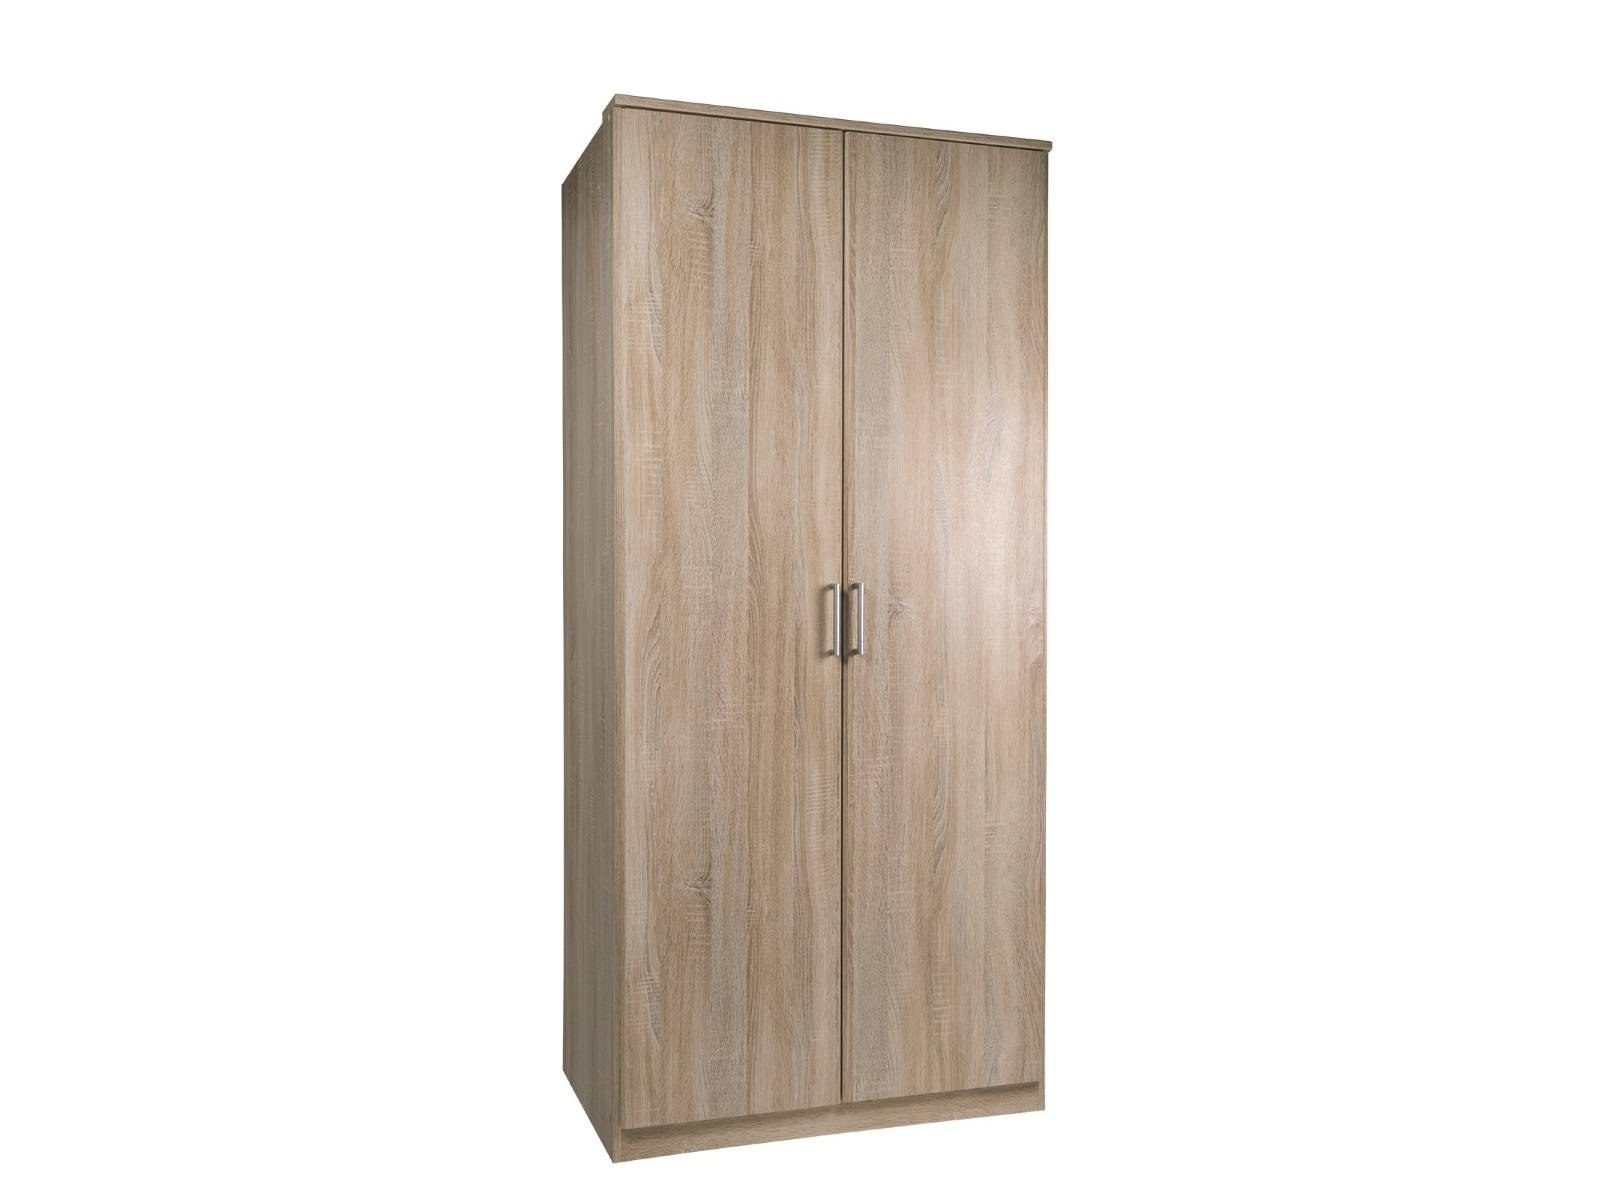 Cheap Wardrobes | Bedroom Furniture For Sale | Double Wardrobe inside Cheap Double Wardrobes (Image 6 of 15)